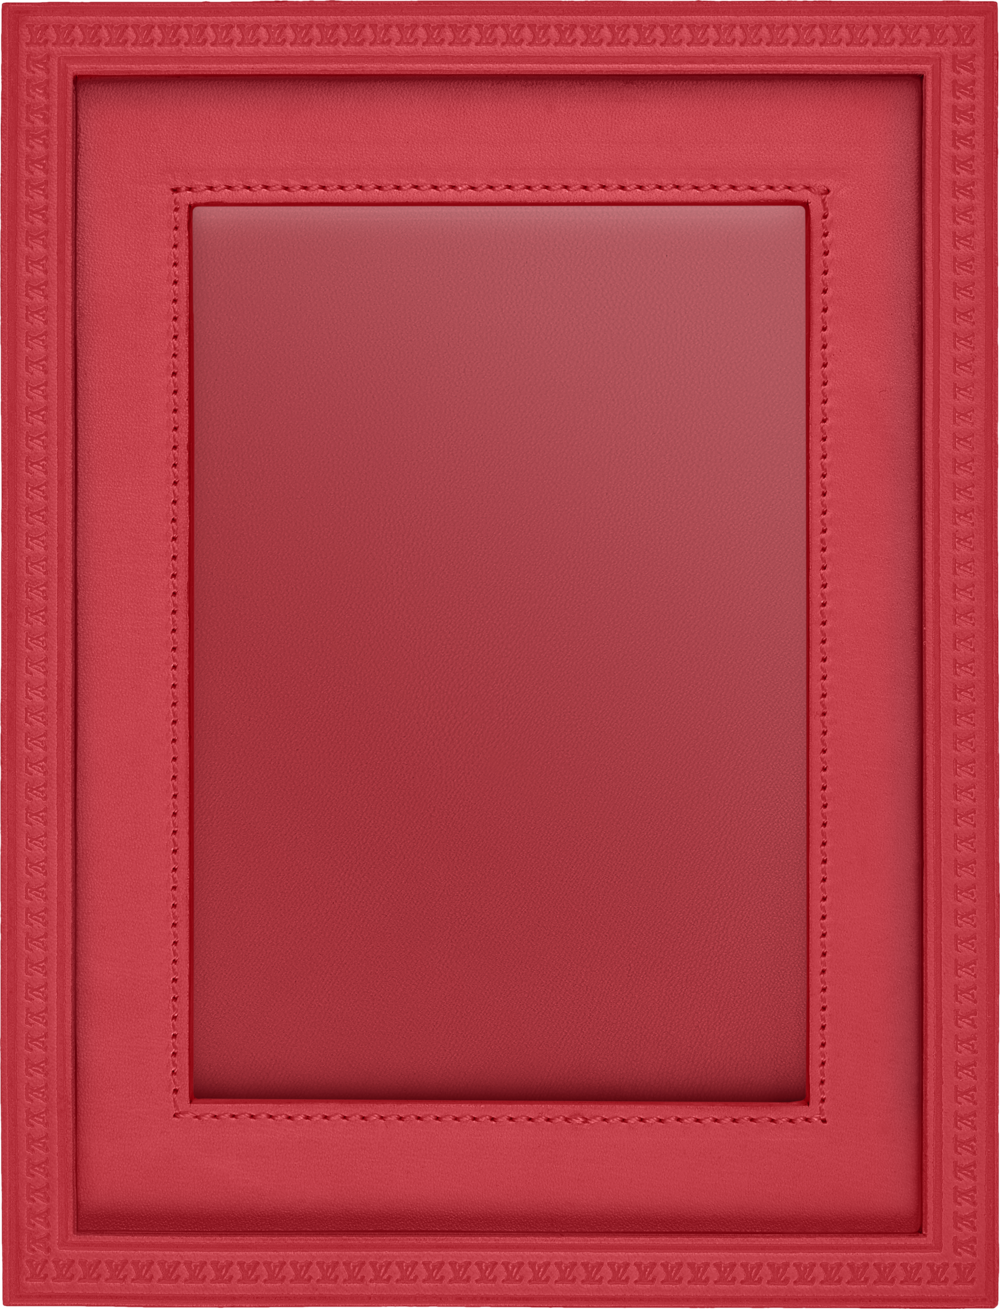 Raspberry coloured leather covered picture frame from Louis Vuitton.